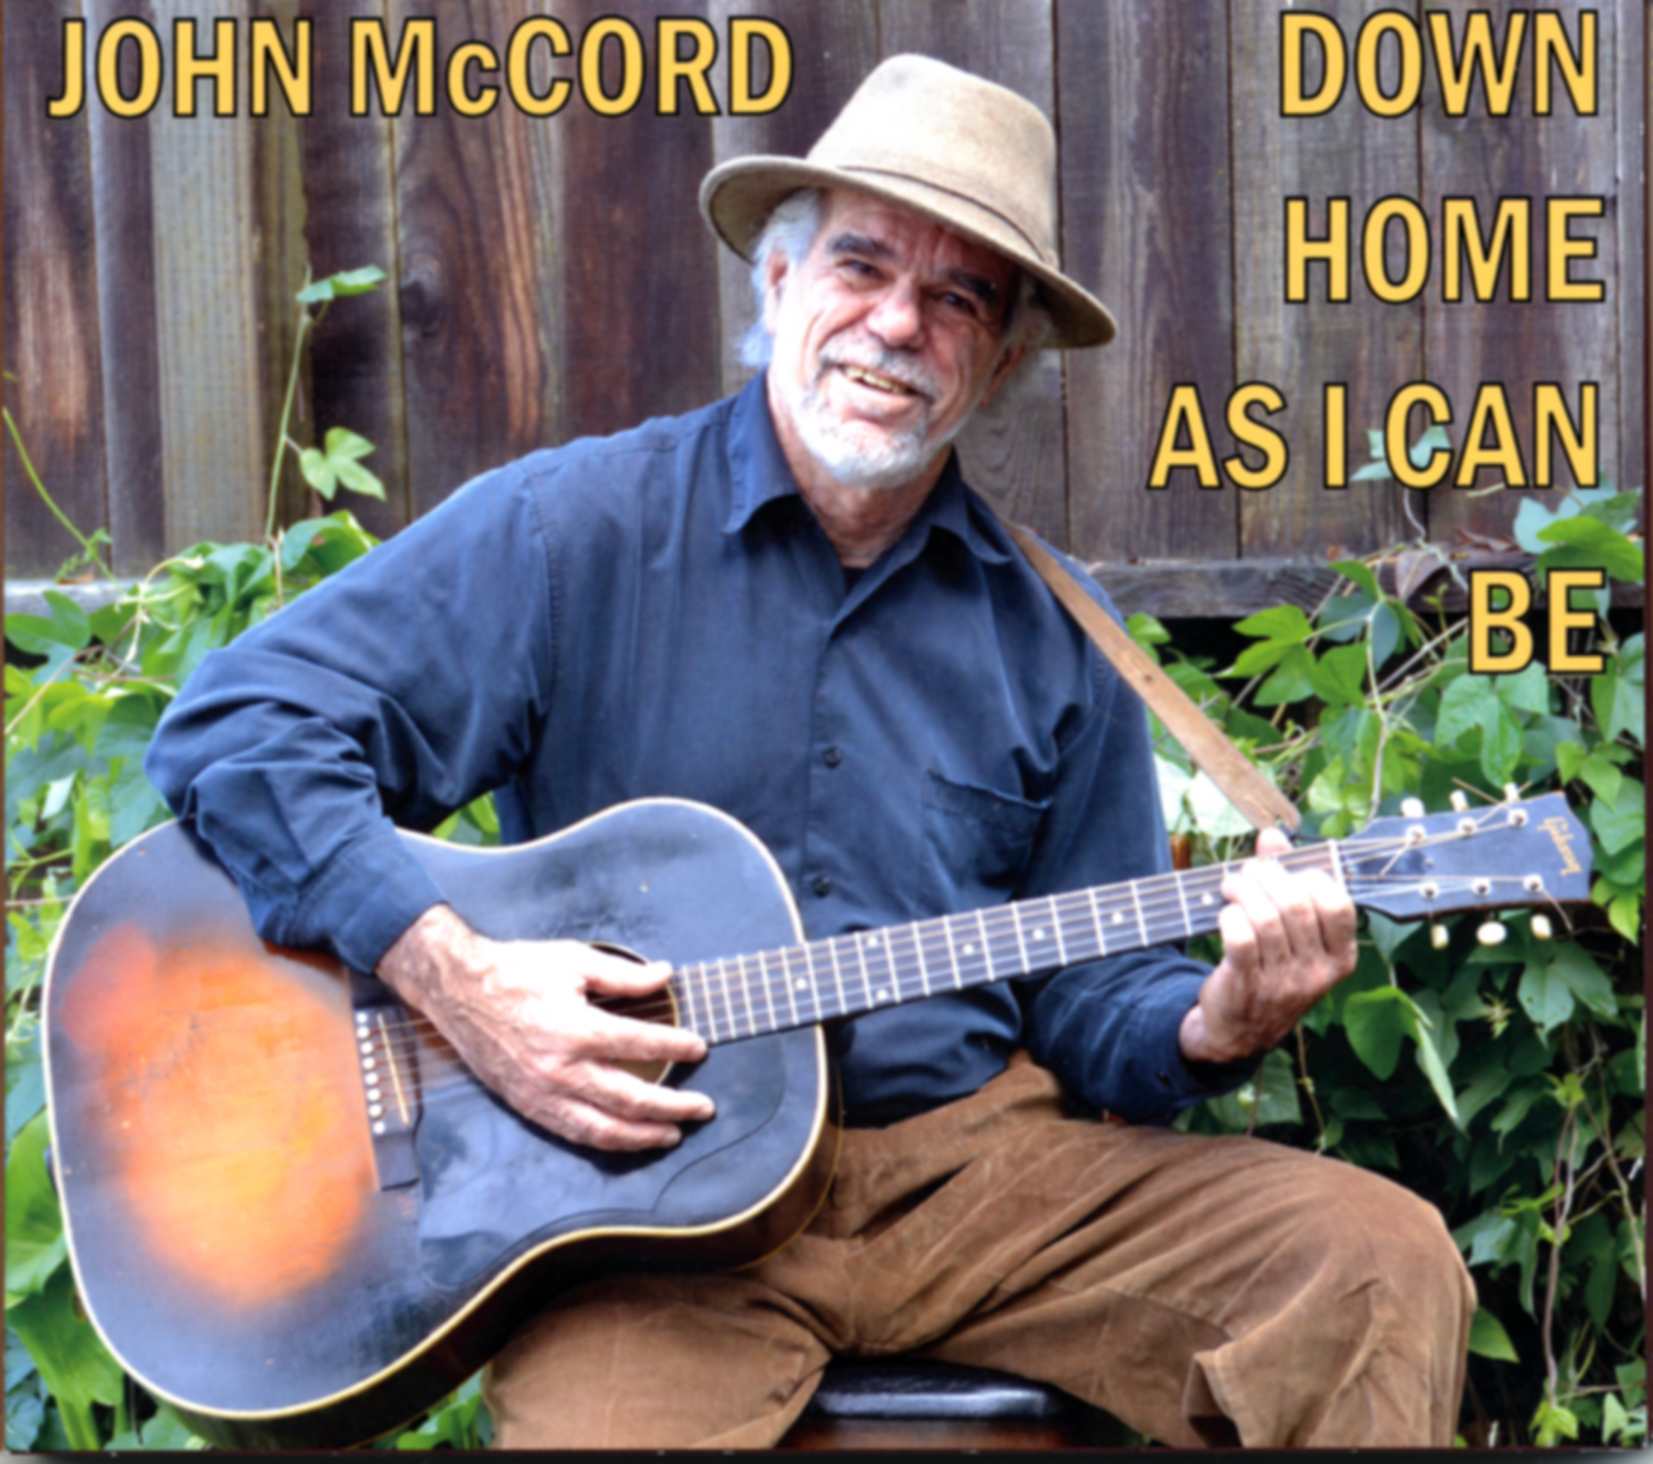 John McCord: Down Home As I Can Be